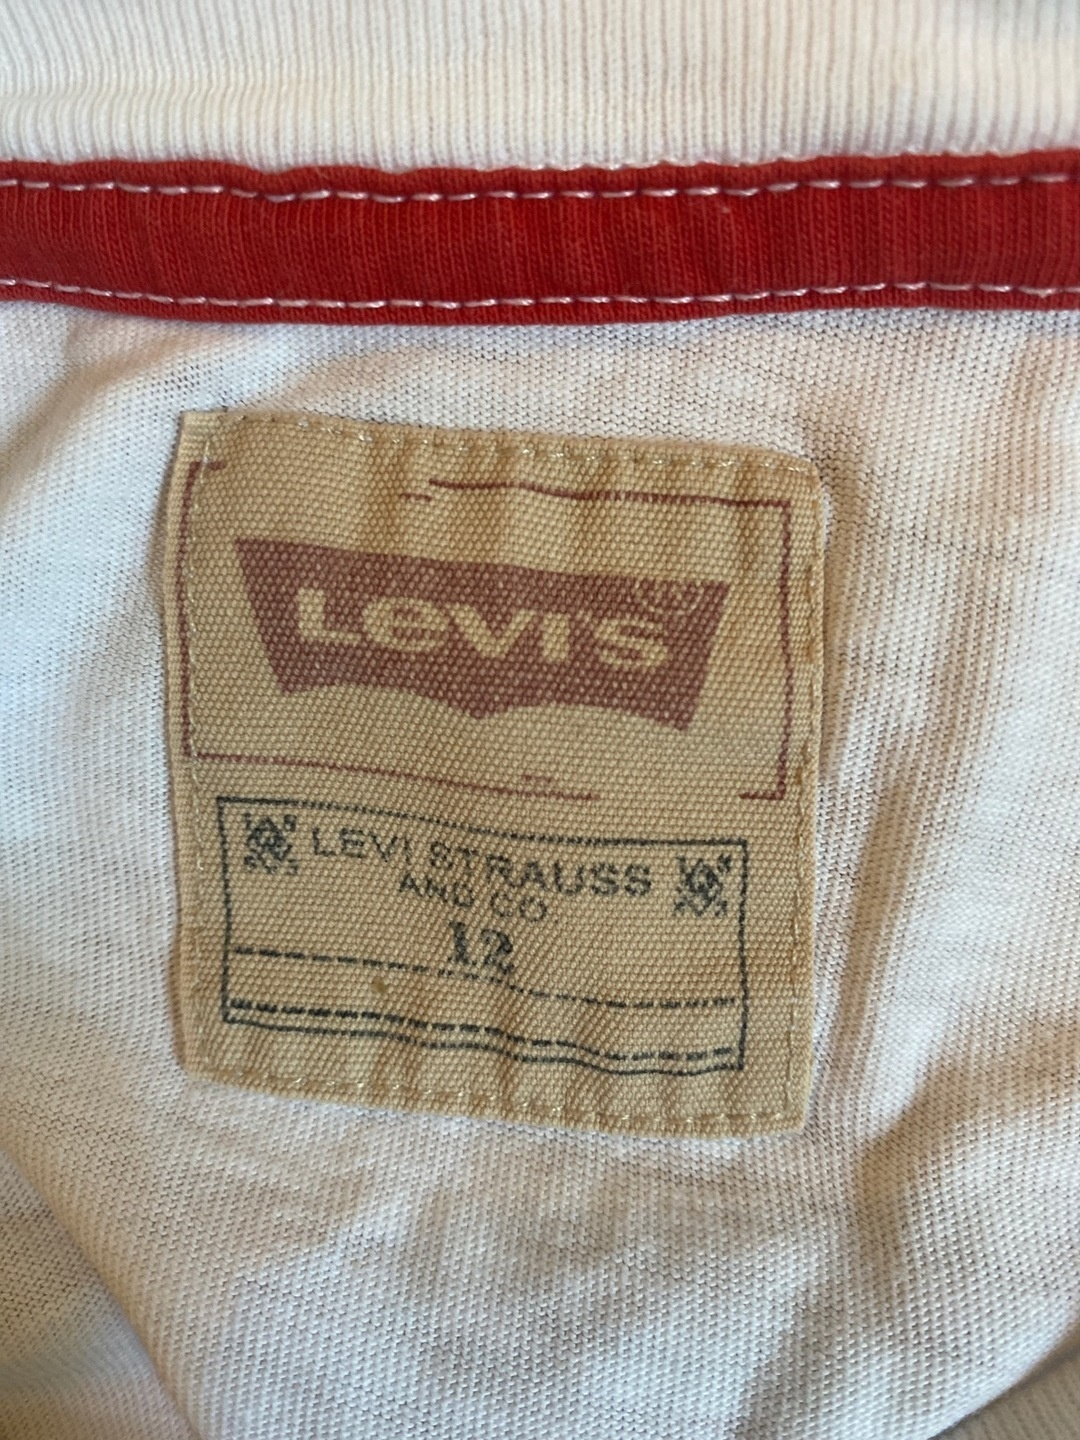 Women's tops & t-shirts - LEVI'S photo 4